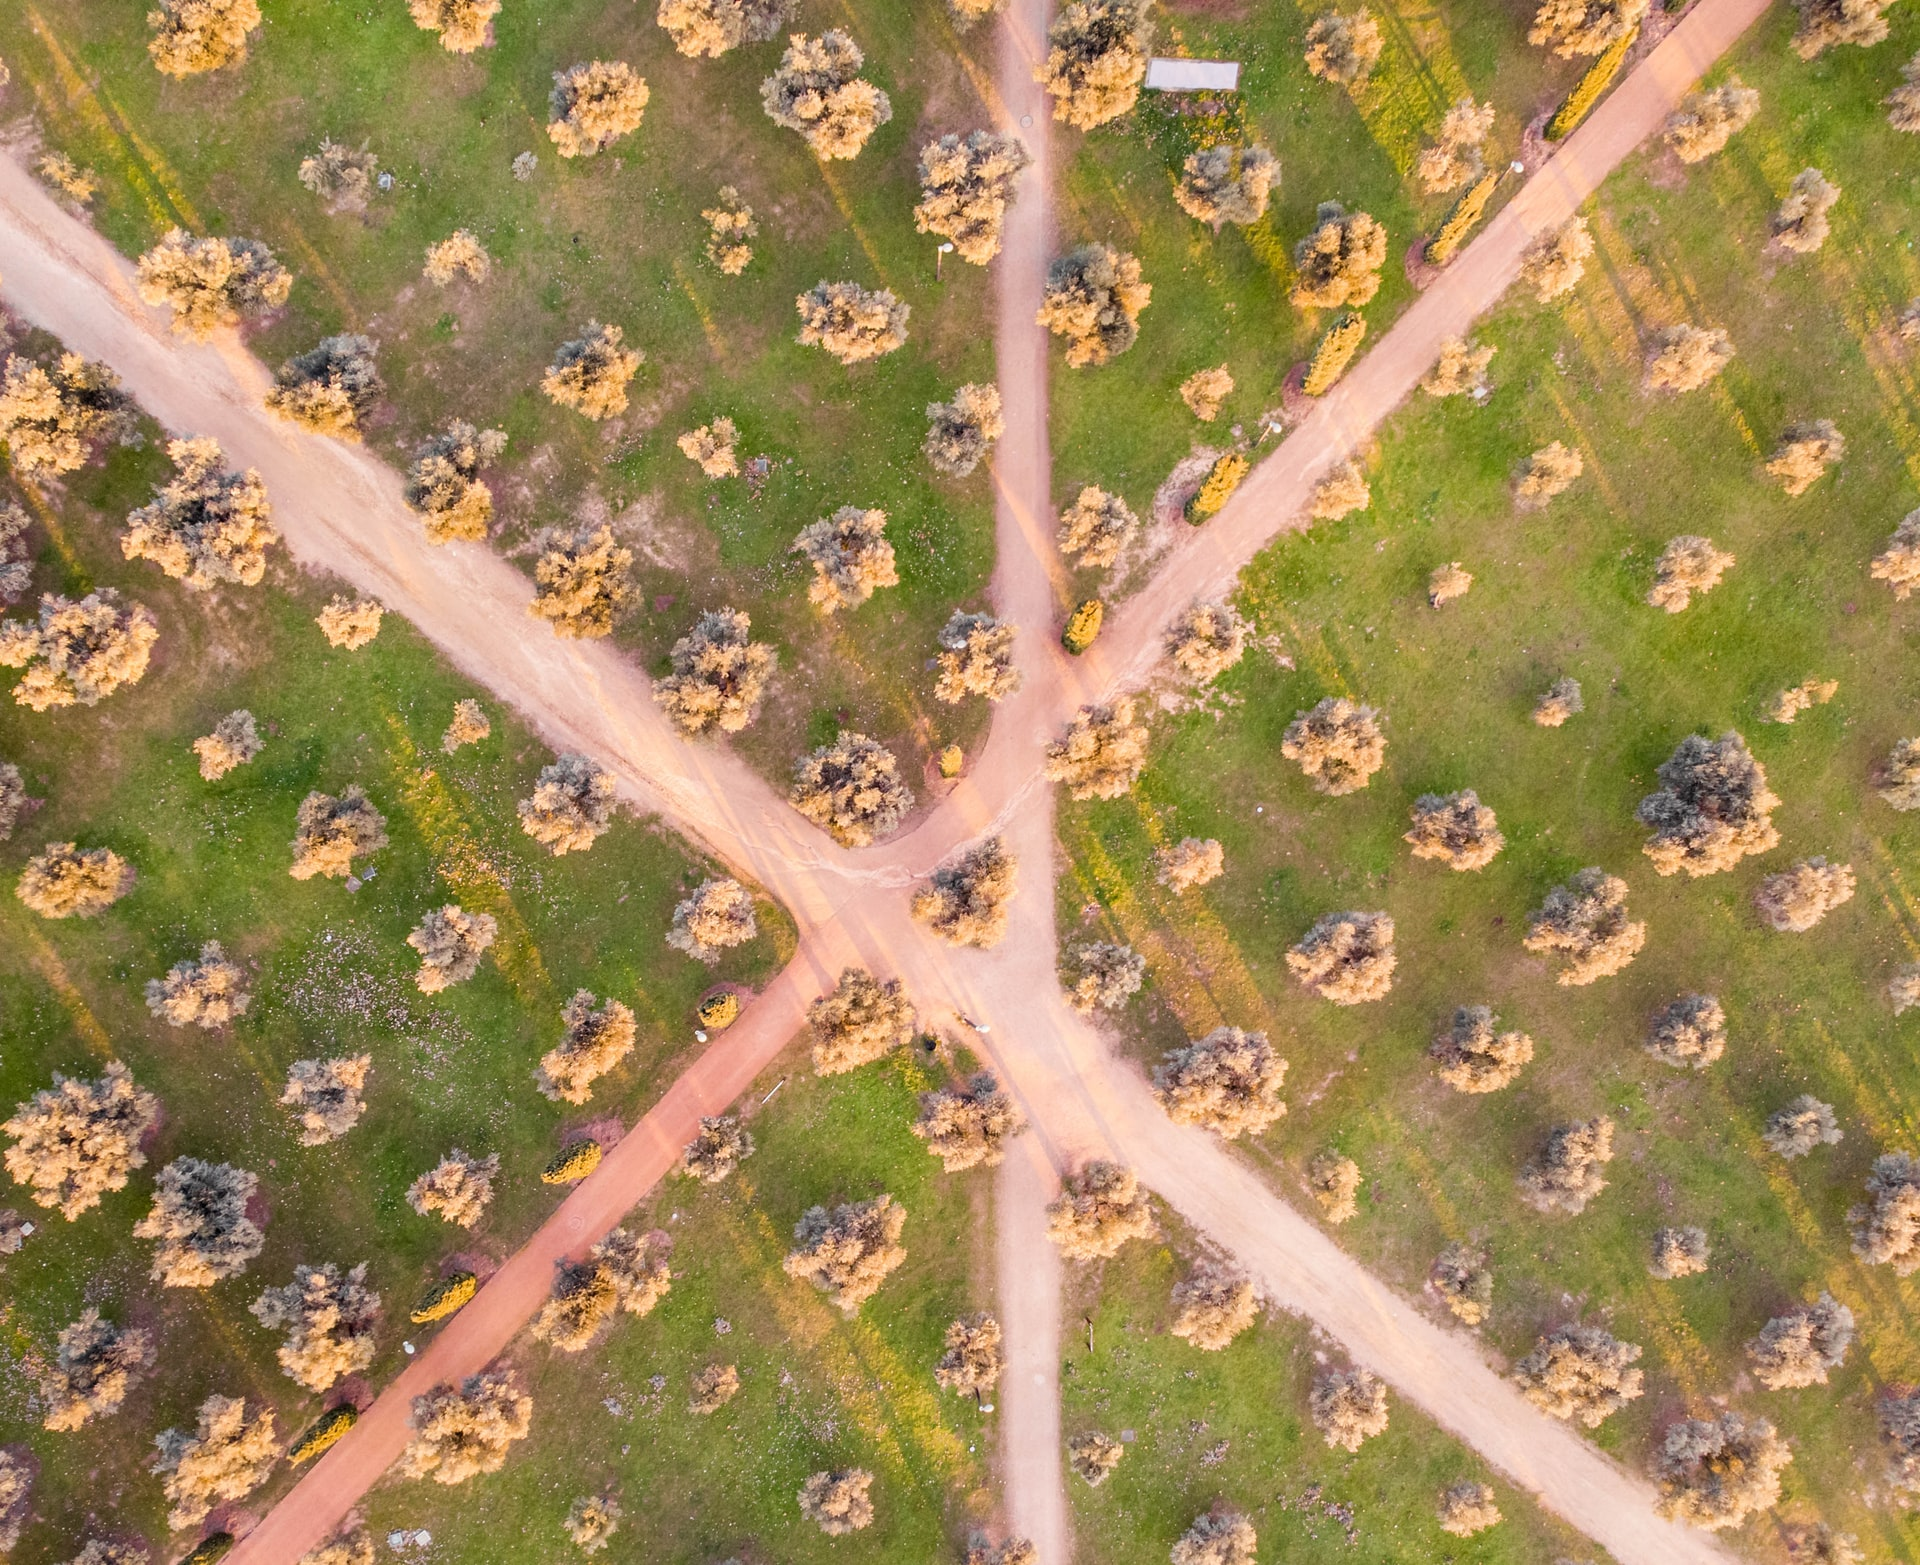 Arial photgraph of roads bisecting a grassed area with trees grouped into different sections